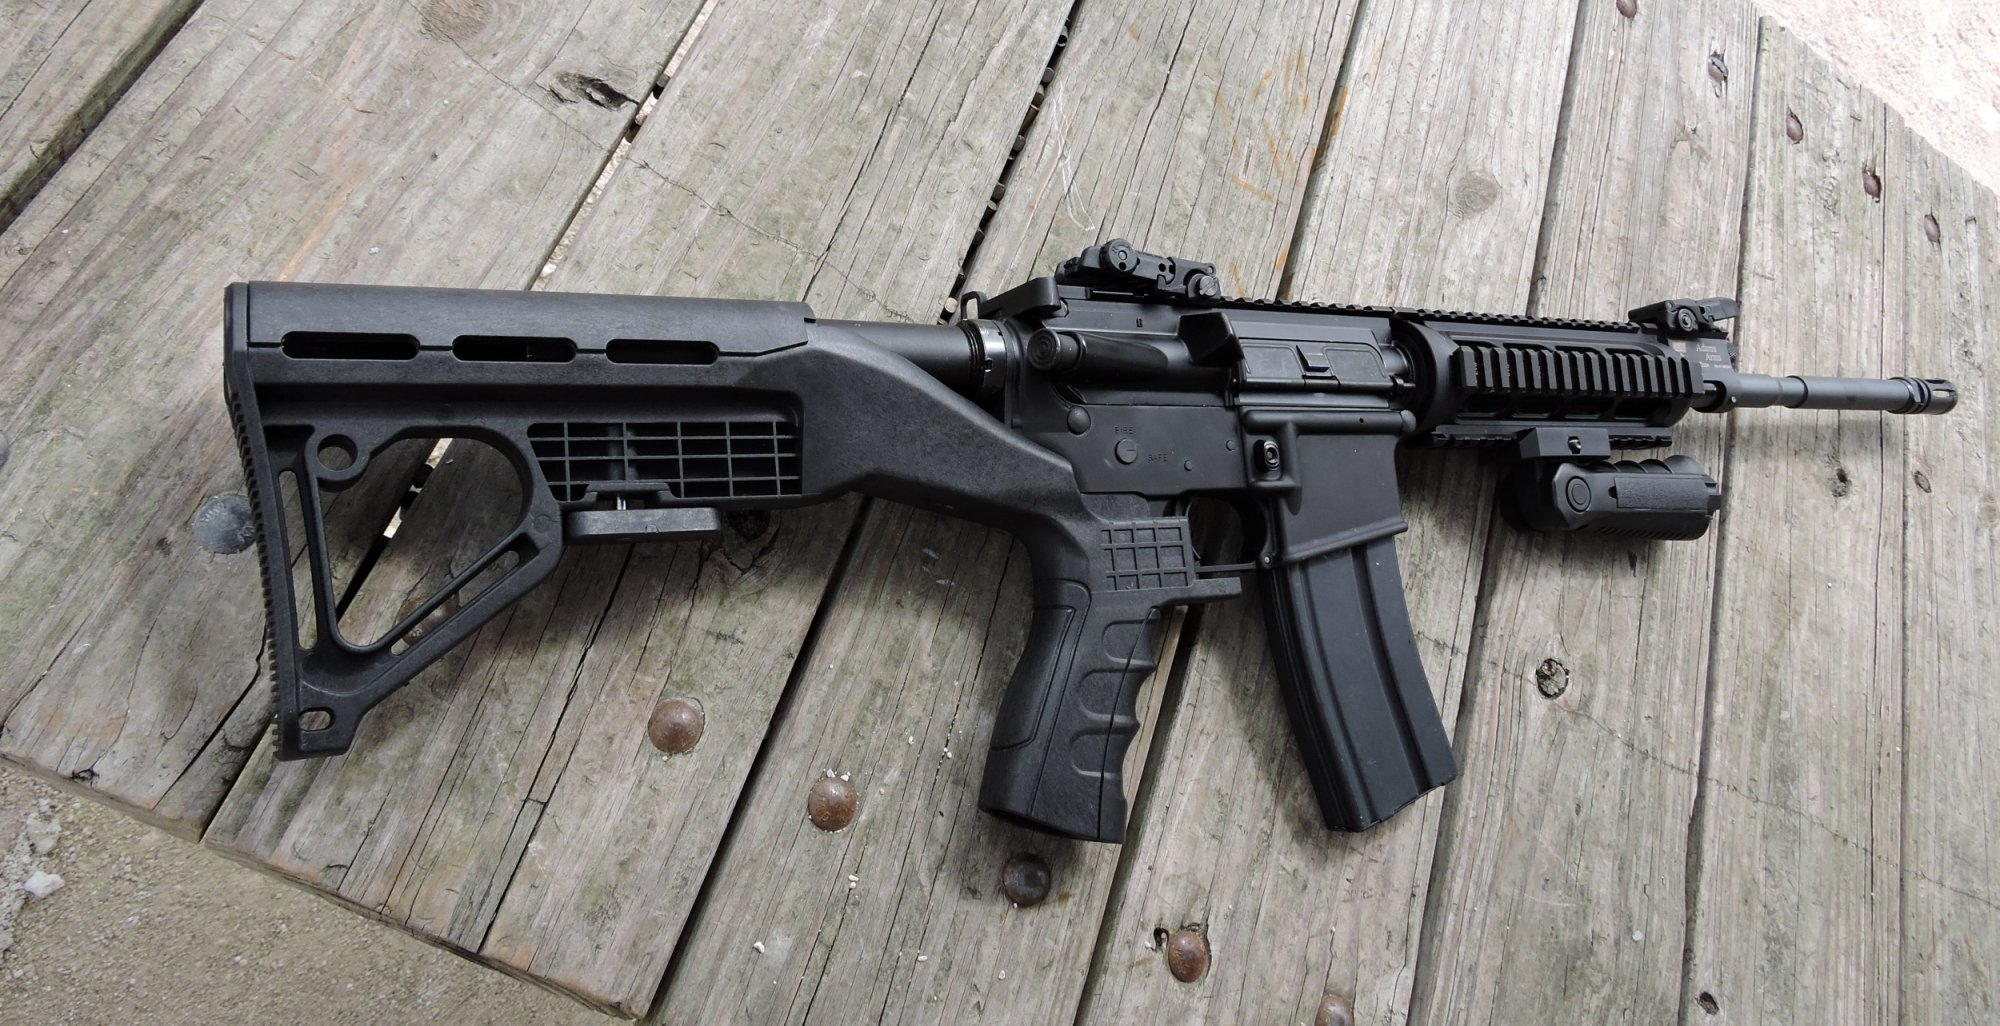 Bump fire systems bfs bump fire stock full auto fire effect for